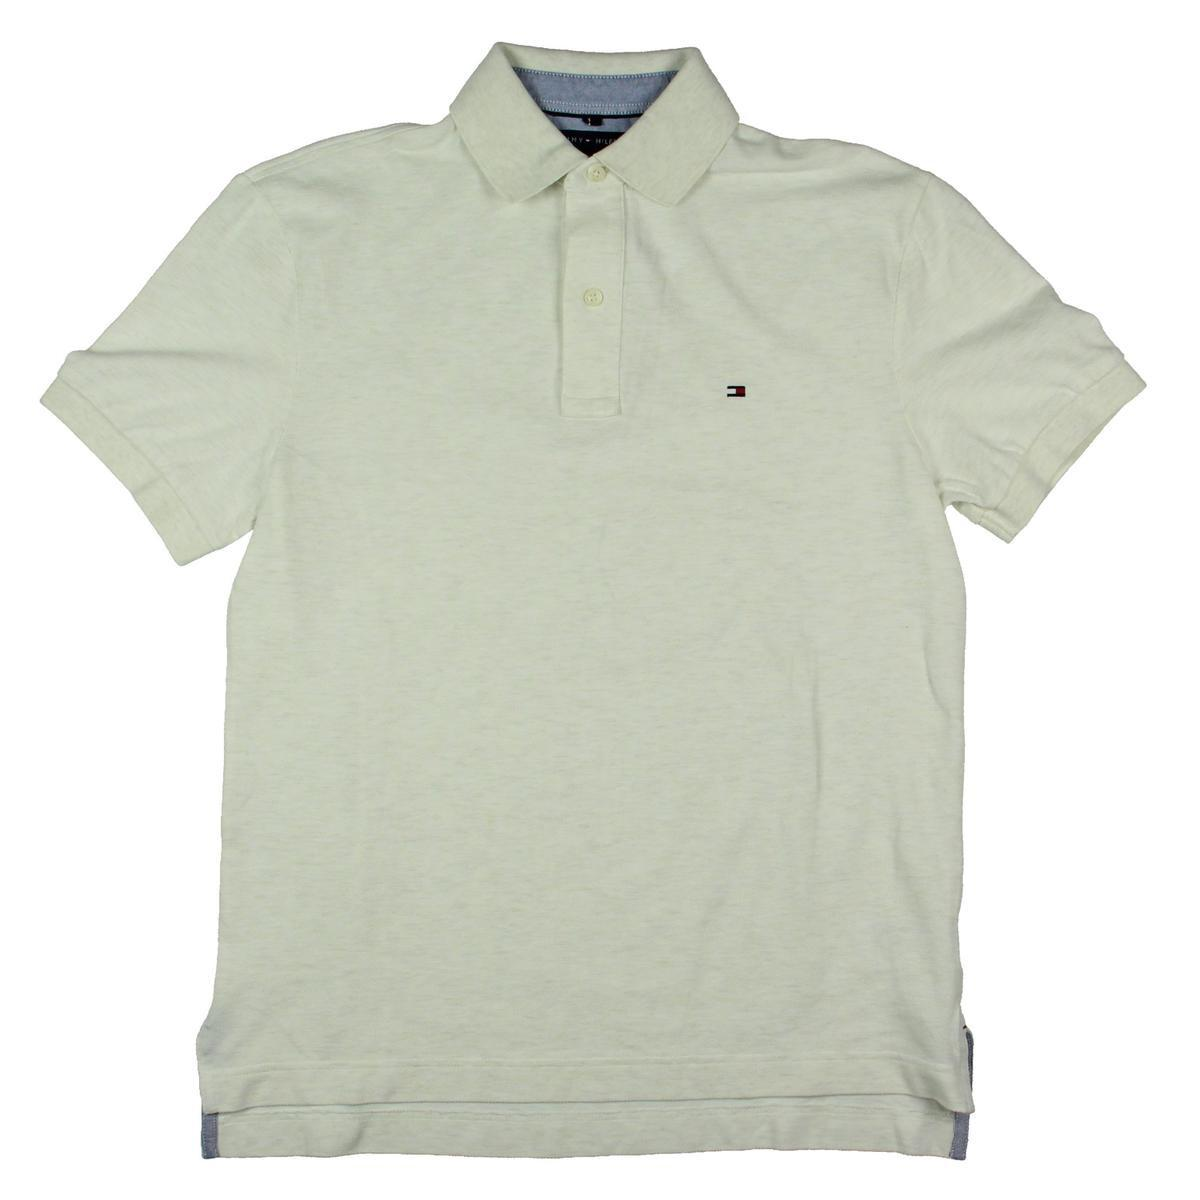 Lyst Tommy Hilfiger Mens Cotton Pique Polo Shirt In White For Men